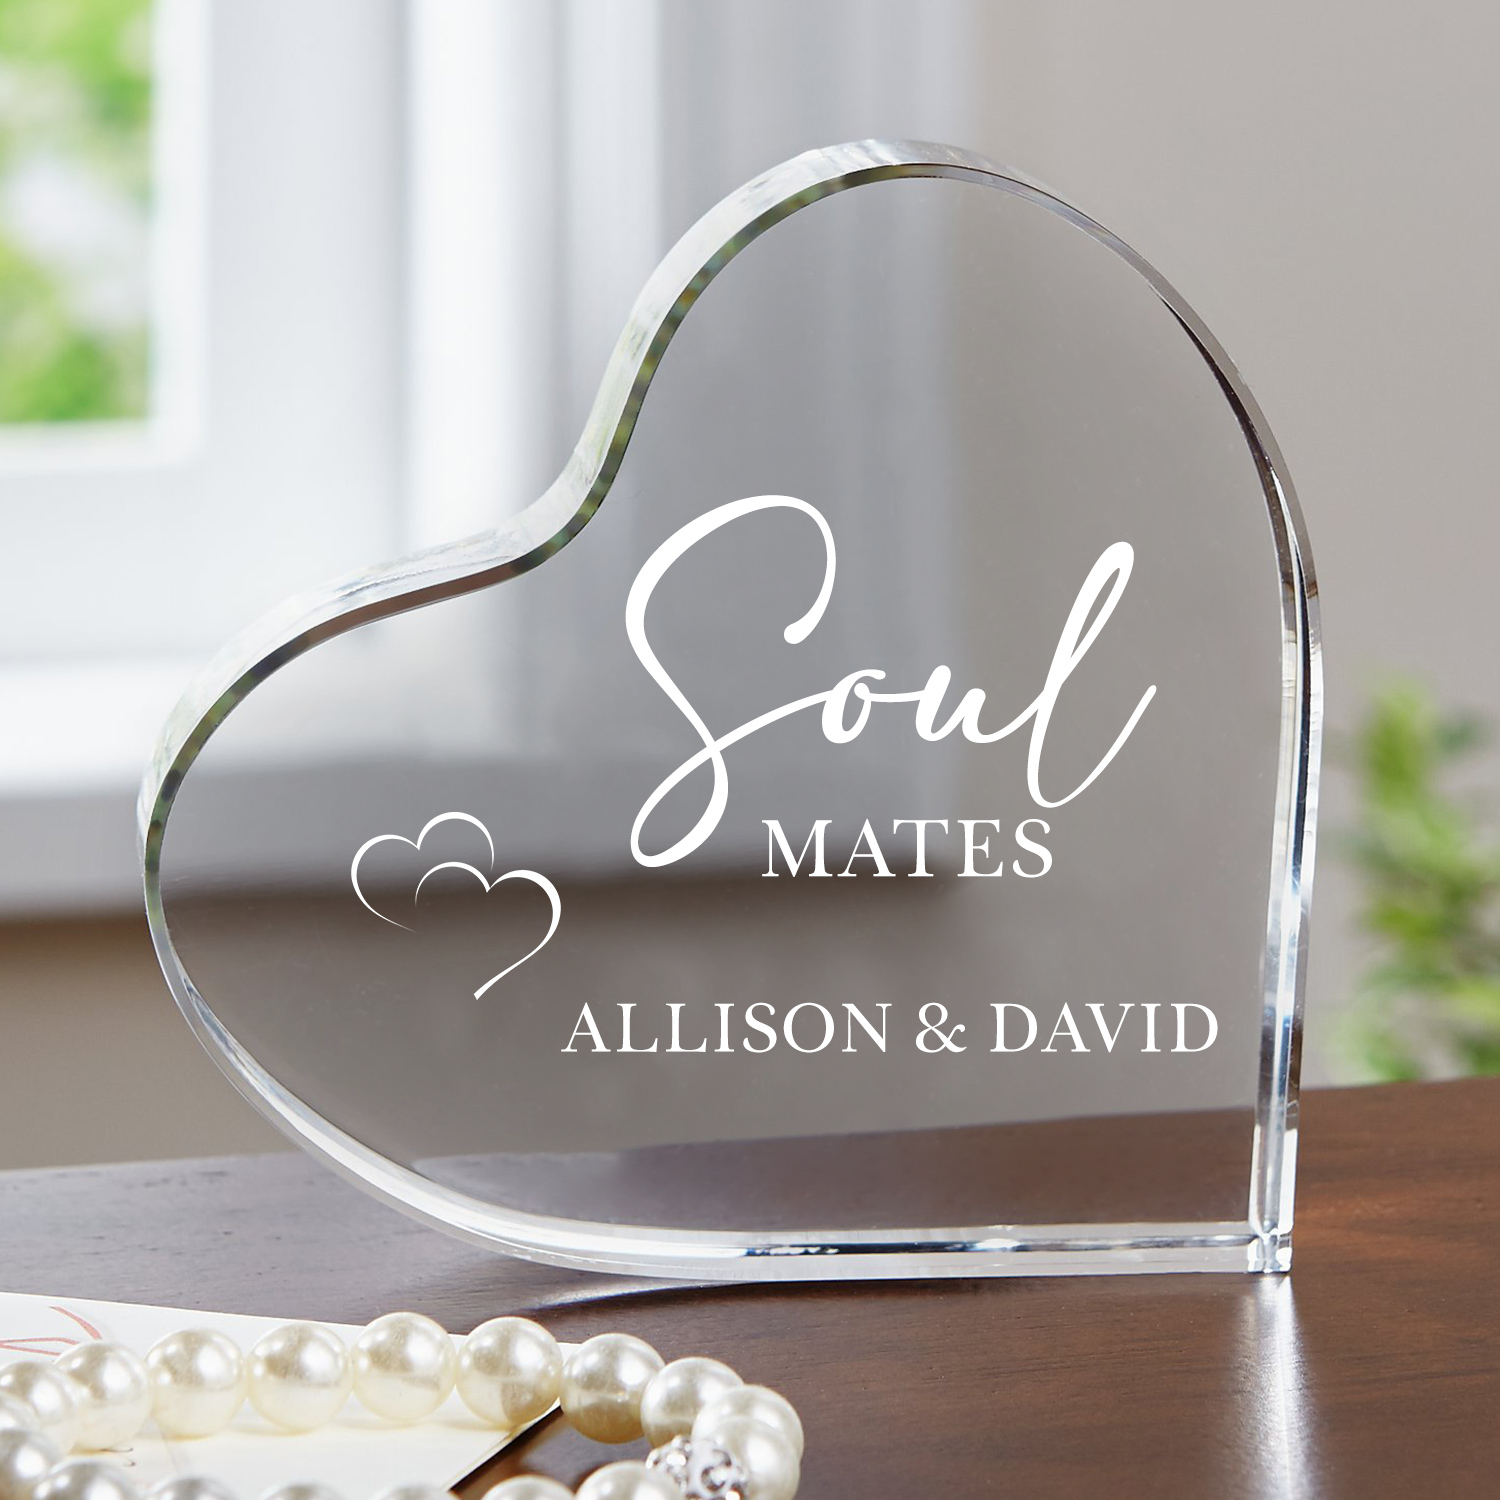 Personalised Expressions Acrylic Plaque: Best Gift for Wife